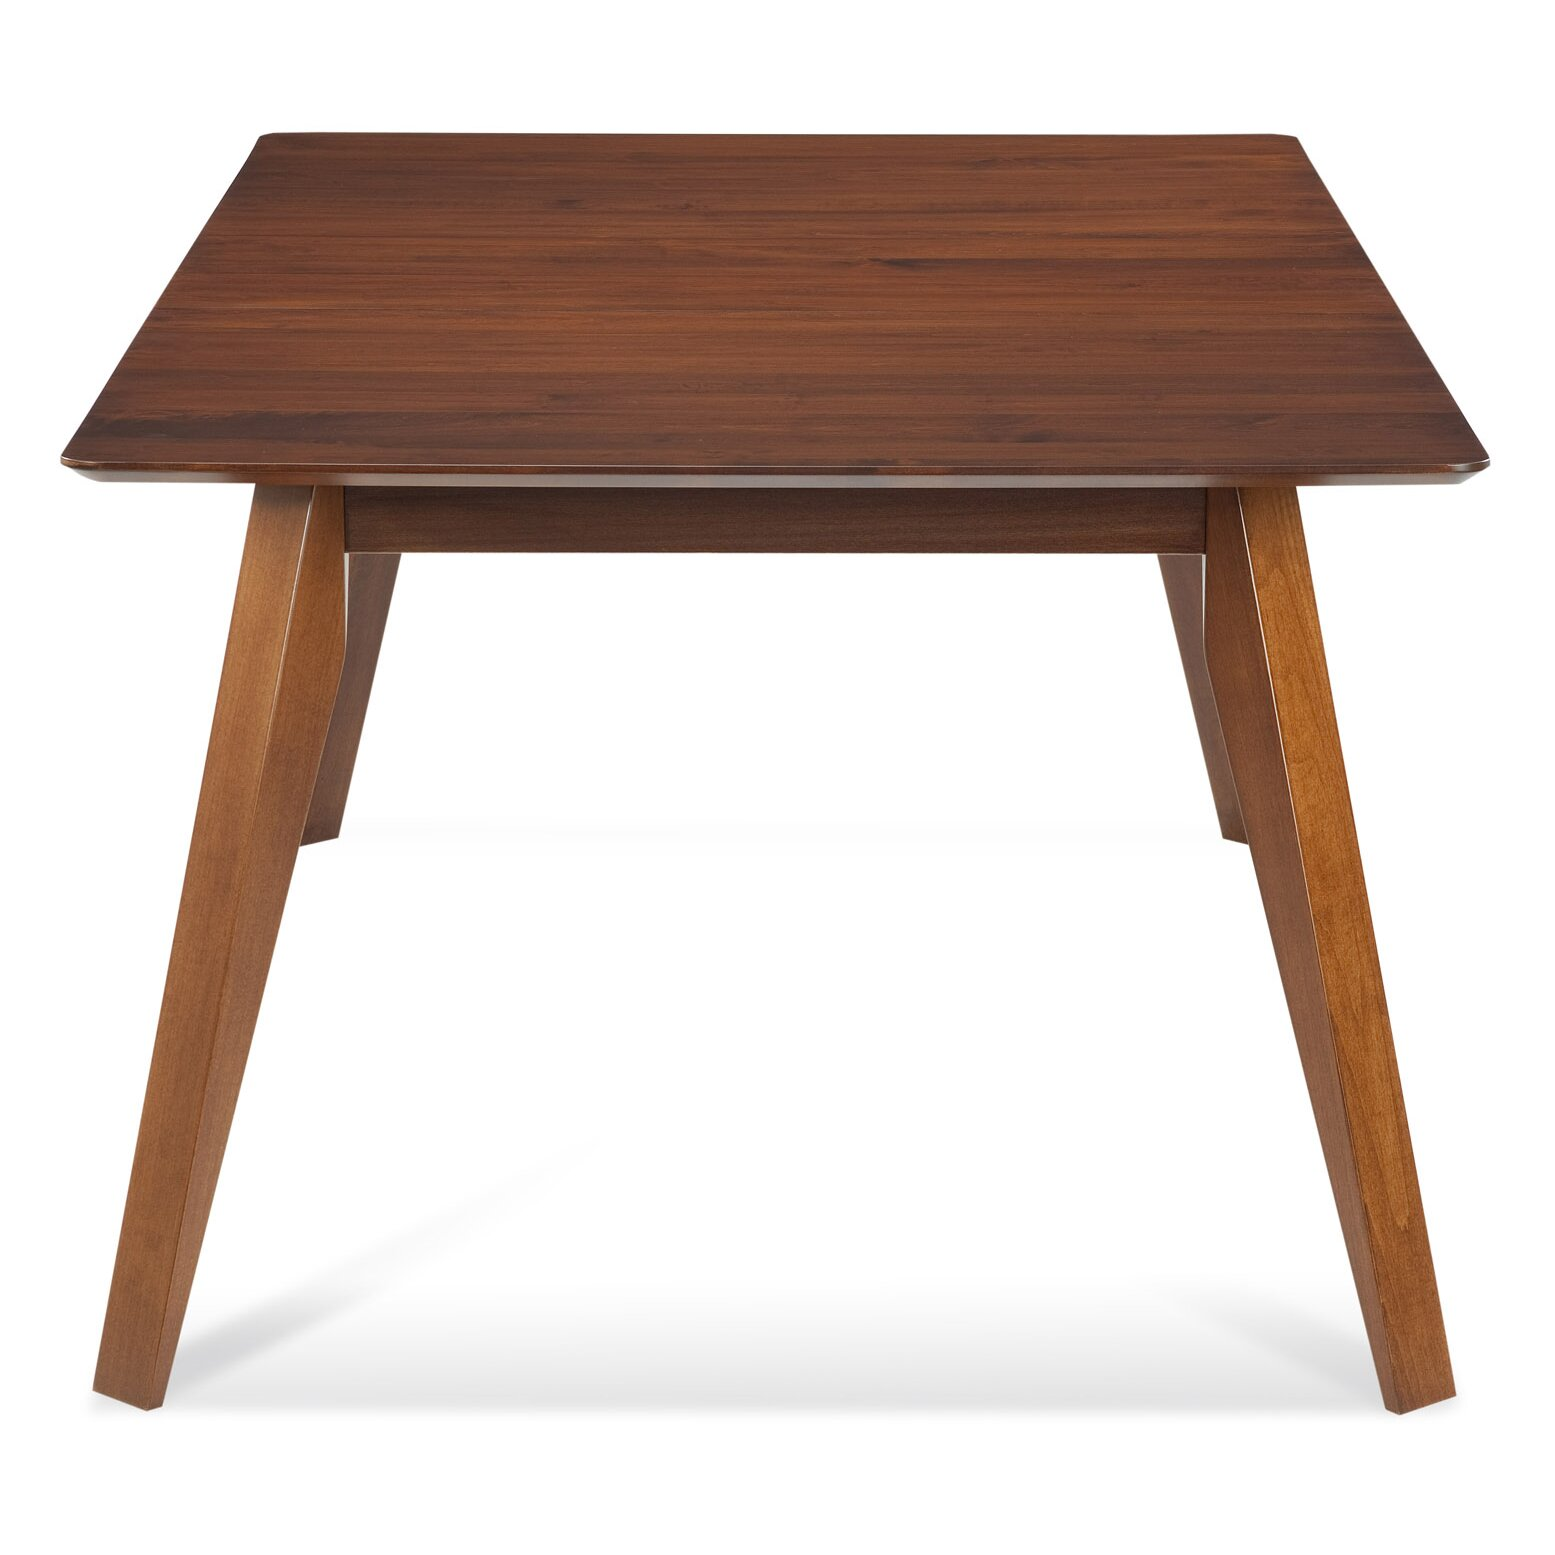 Saloom Furniture Spectra Extendable Dining Table Reviews